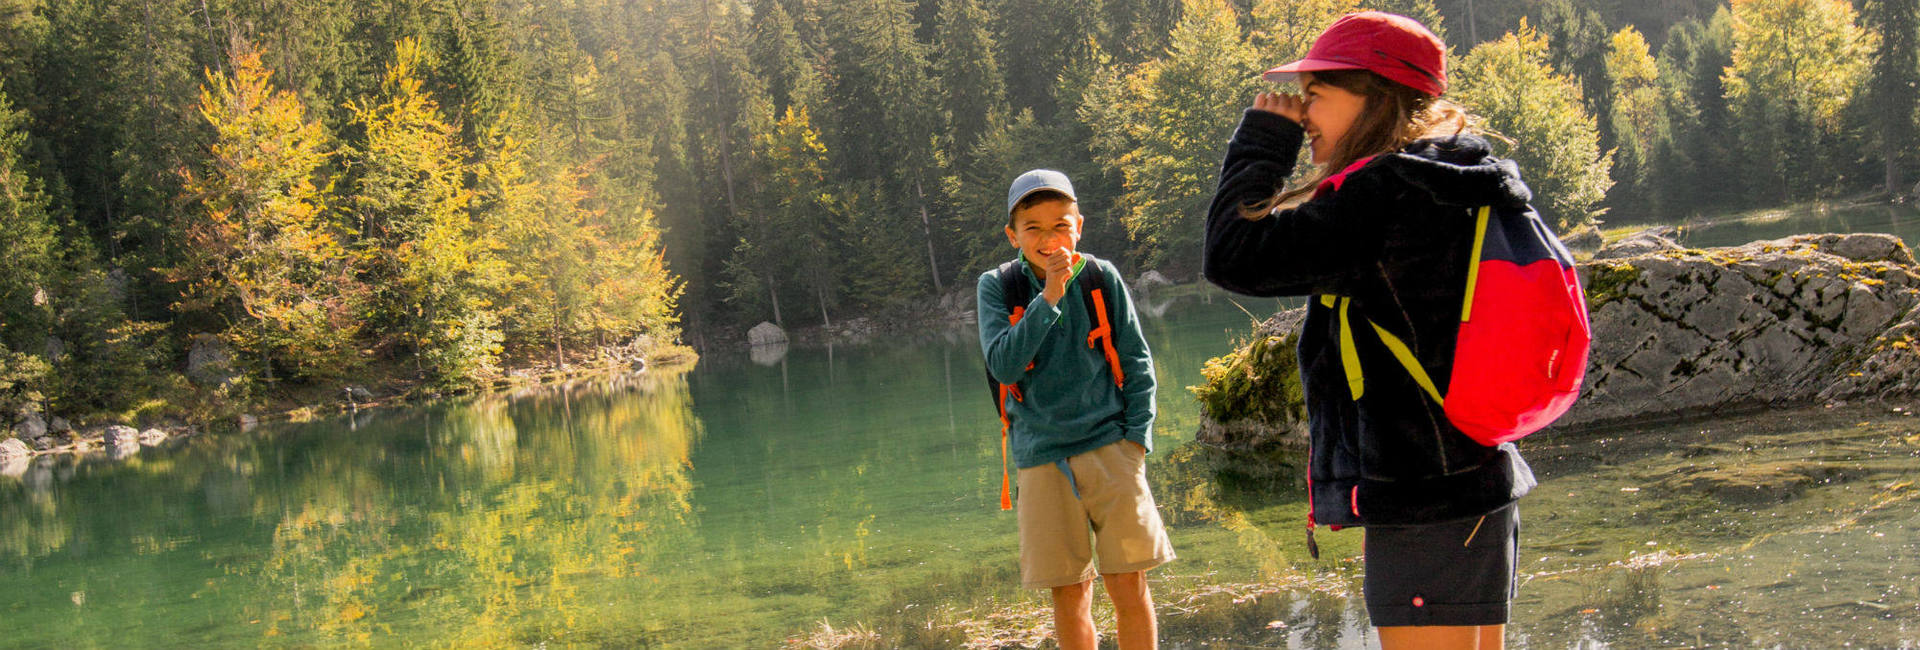 What To Take In Your Child's Backpack When Going Hiking